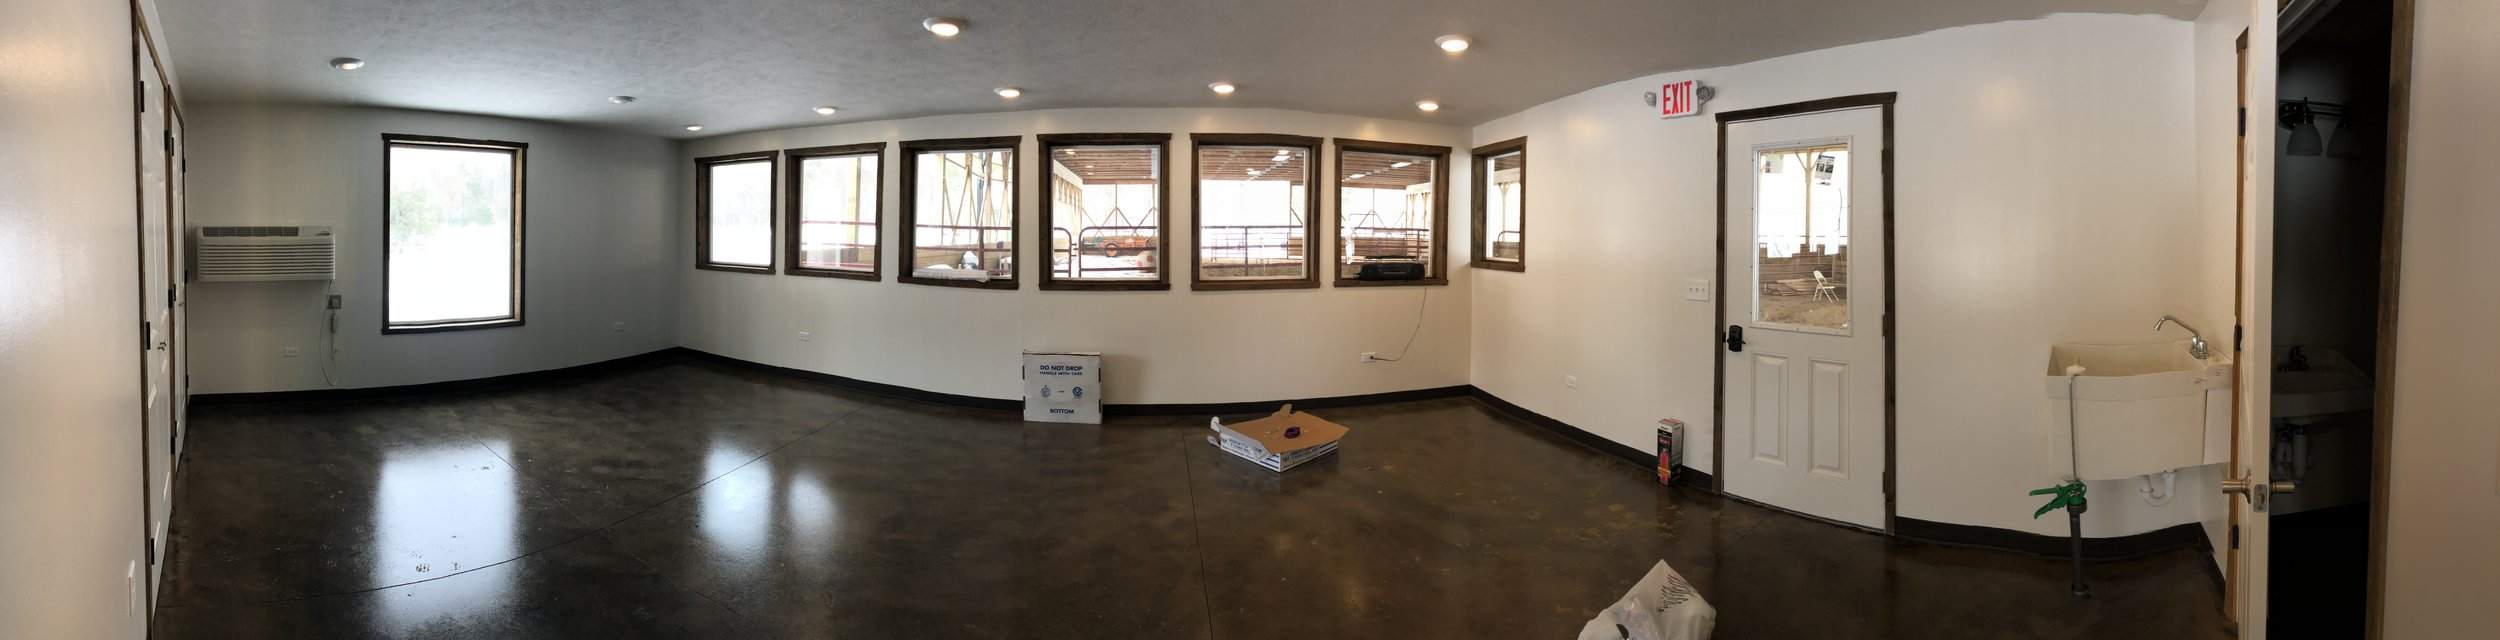 New therapy room open to the arena for the integration of art & music with Equine-assisted therapy.